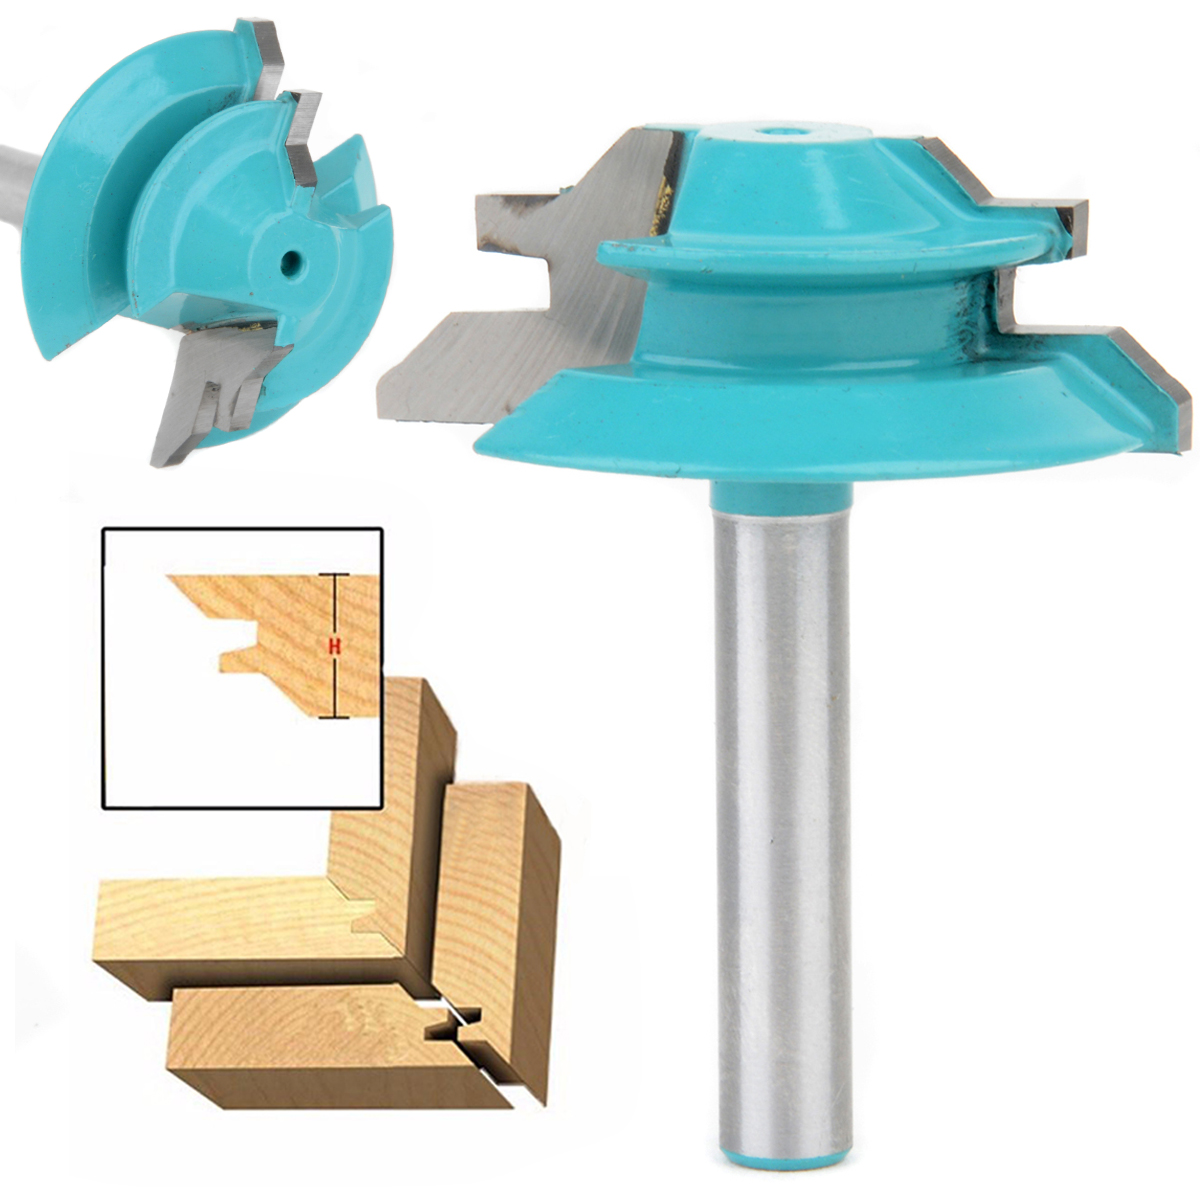 цена на 45 Degree Lock Miter Router Bit 1-1/2 Diameter 1/4 Shank Wood Cutter For Wood Working Drilling